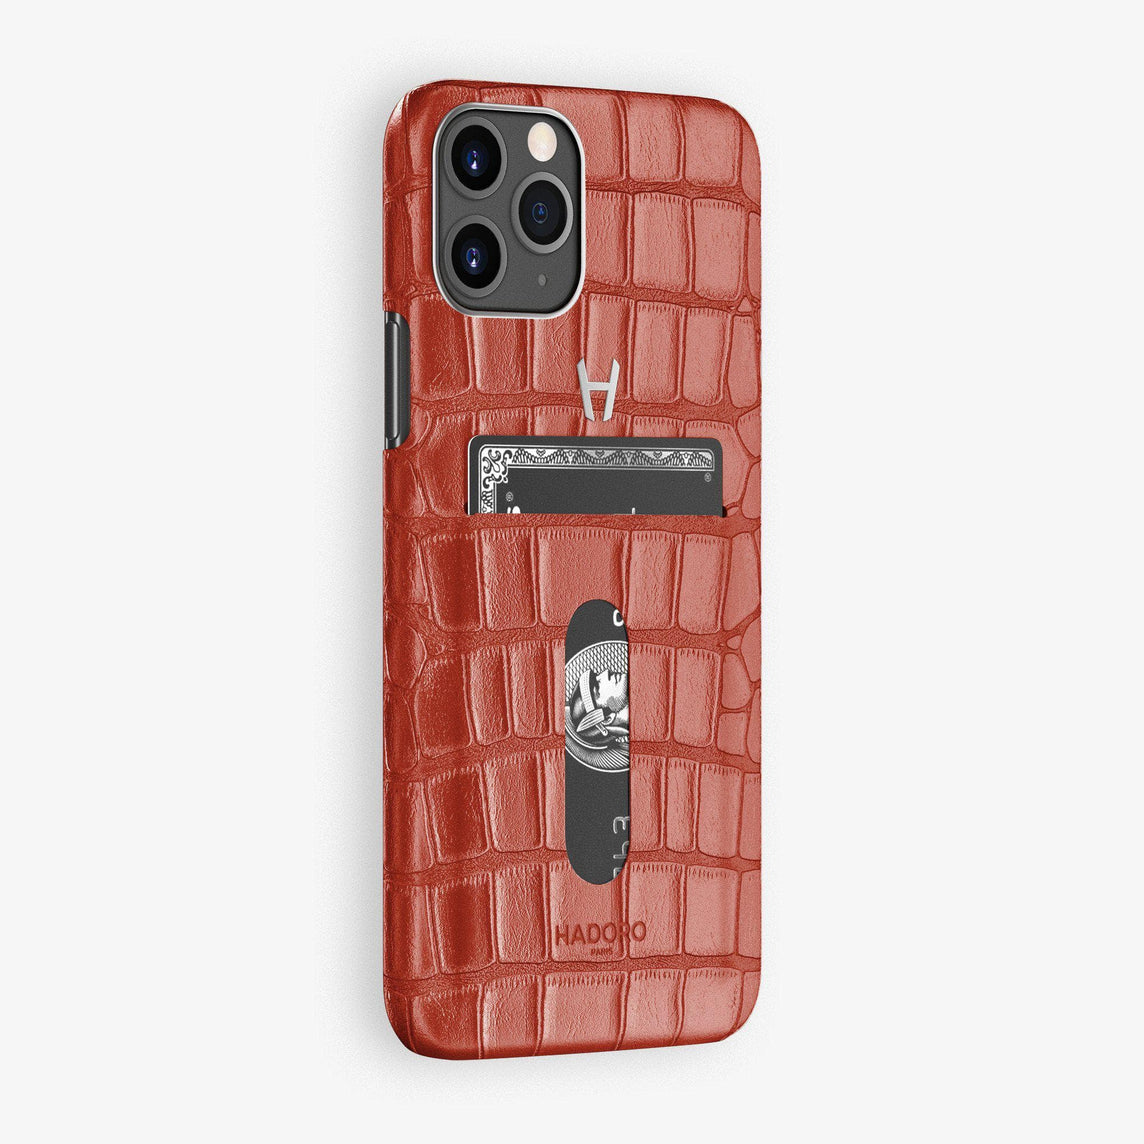 Alligator Card Holder Case iPhone 11 Pro | Red Lipstick - Stainless Steel